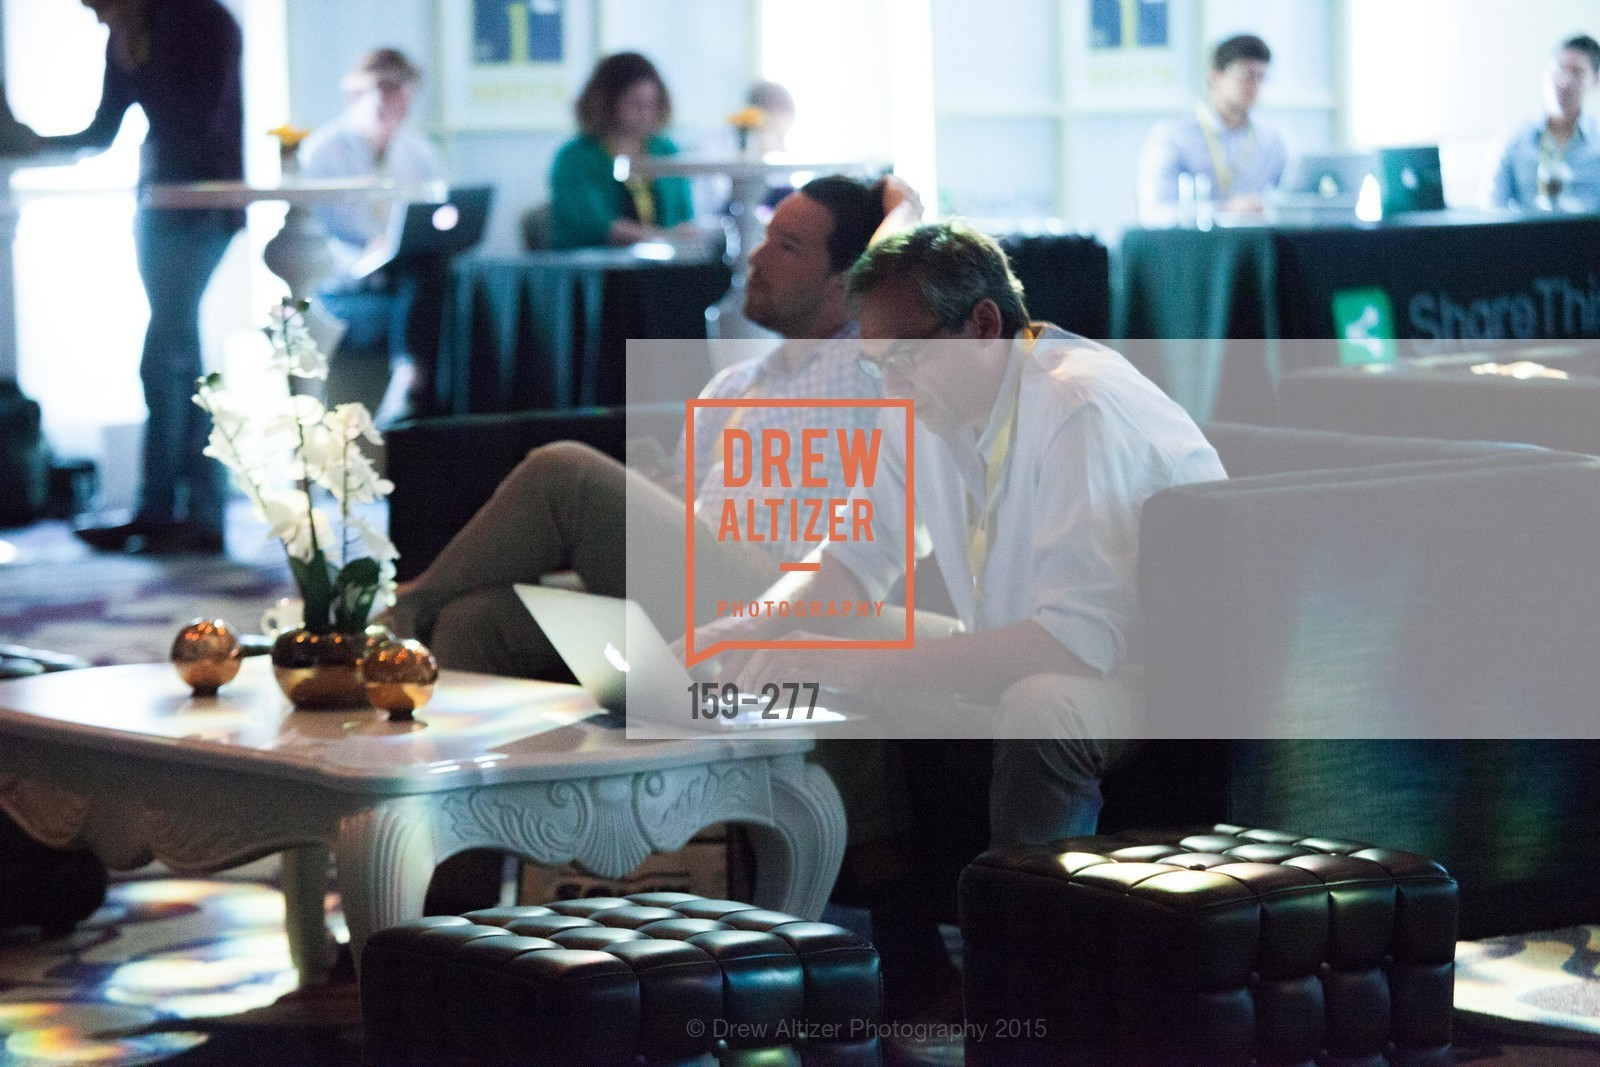 Atmosphere, sovrn i 2 summit 2015, September 9th, 2015, Photo,Drew Altizer, Drew Altizer Photography, full-service event agency, private events, San Francisco photographer, photographer California